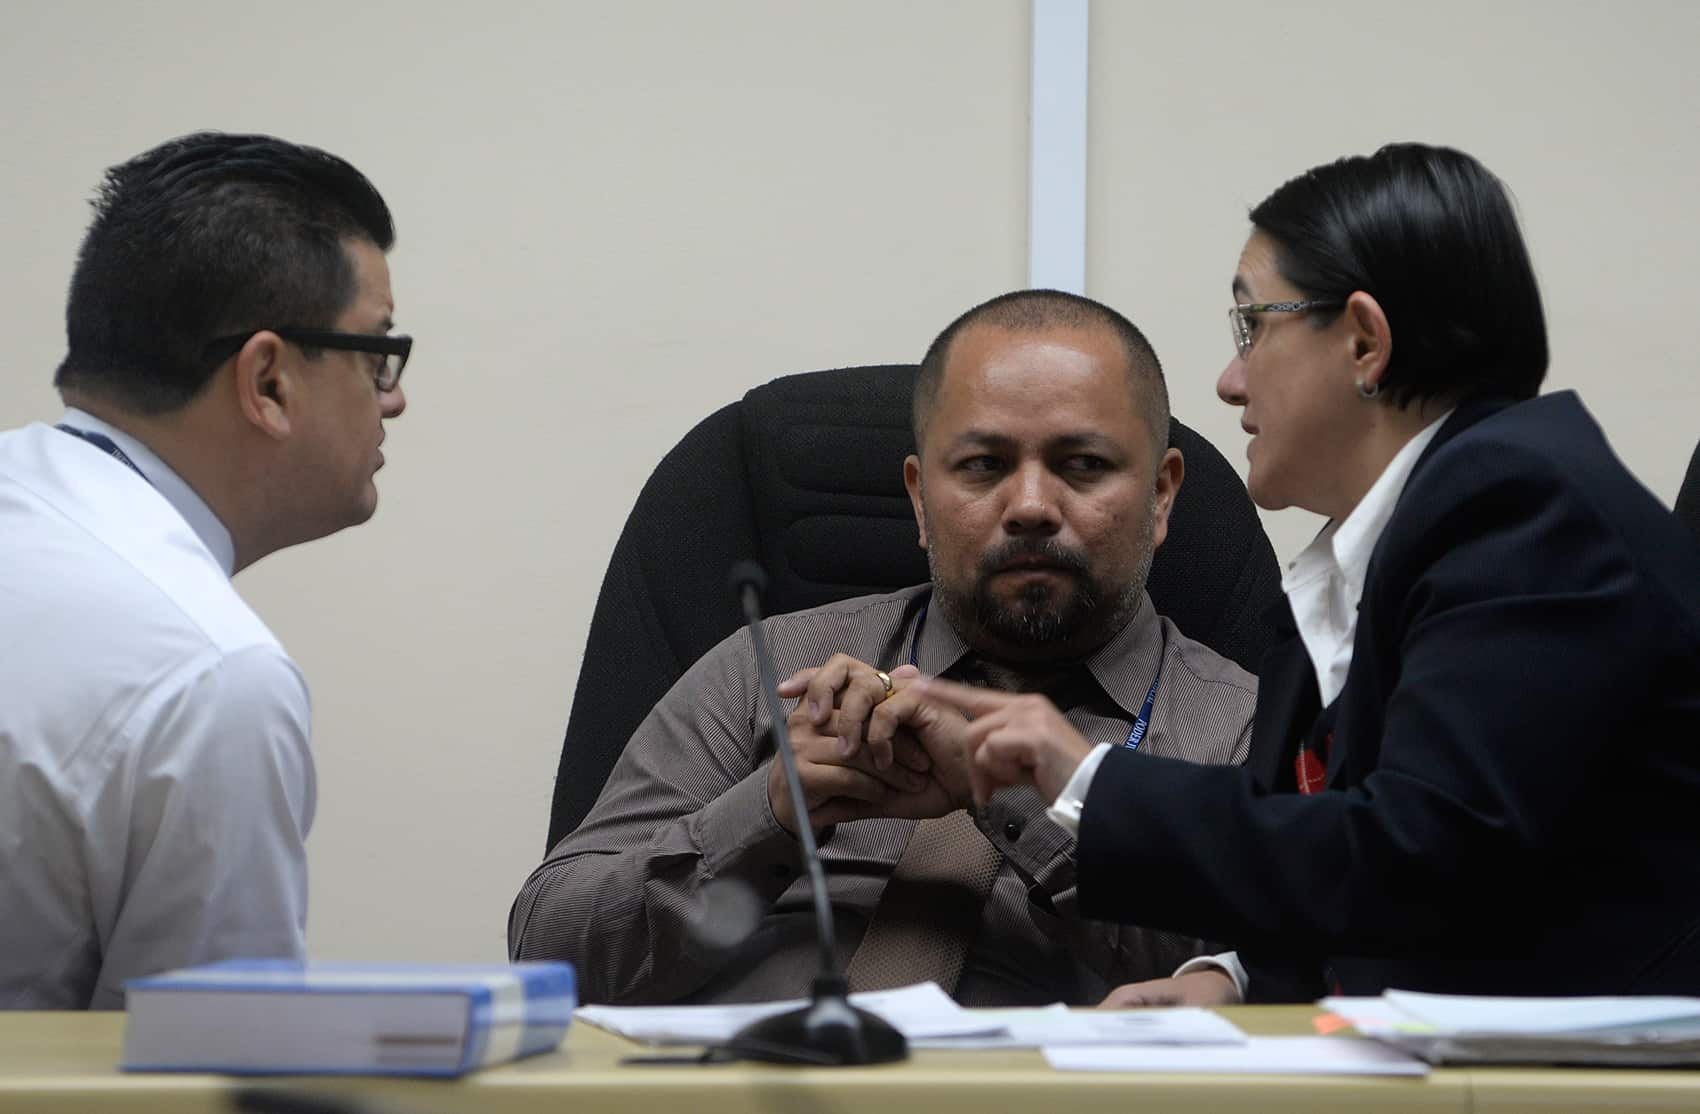 From left, judges Luis Rodríguez Arauz, Hernán Salazar and Yolanda Alvarado discuss evidence during the Jairo Mora murder trial in Limón, Costa Rica, on Jan. 12, 2015.